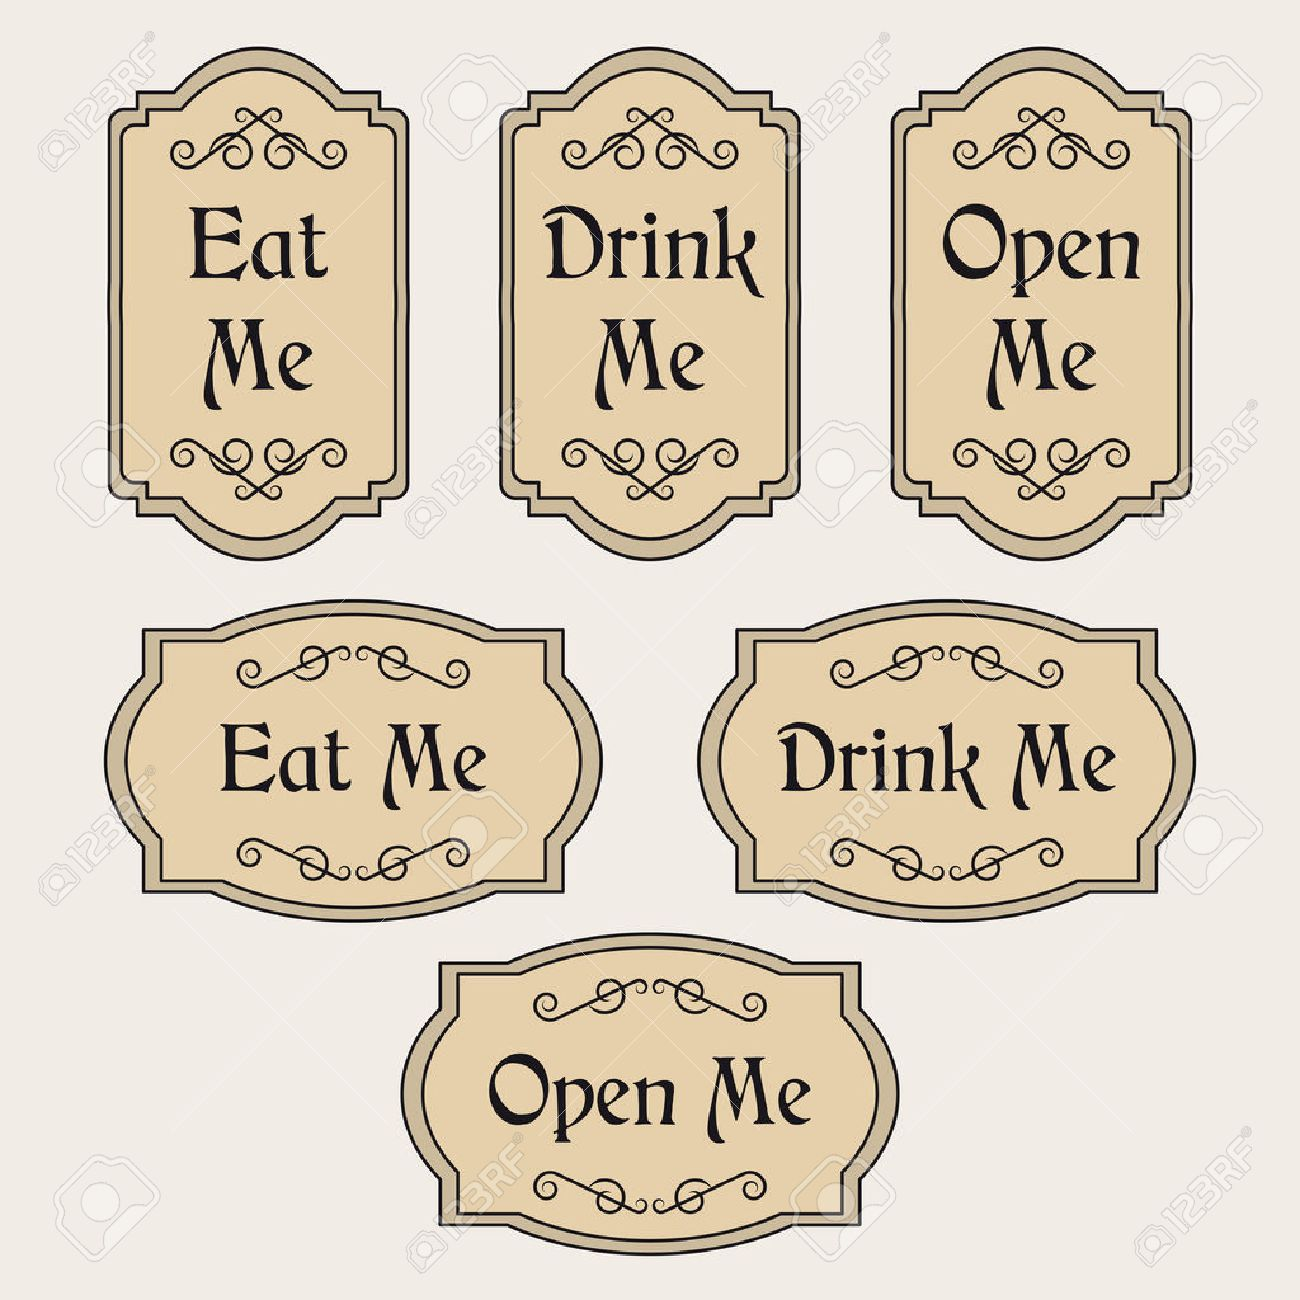 Vintage vector set with labels Eat me, Drink me, Open me.